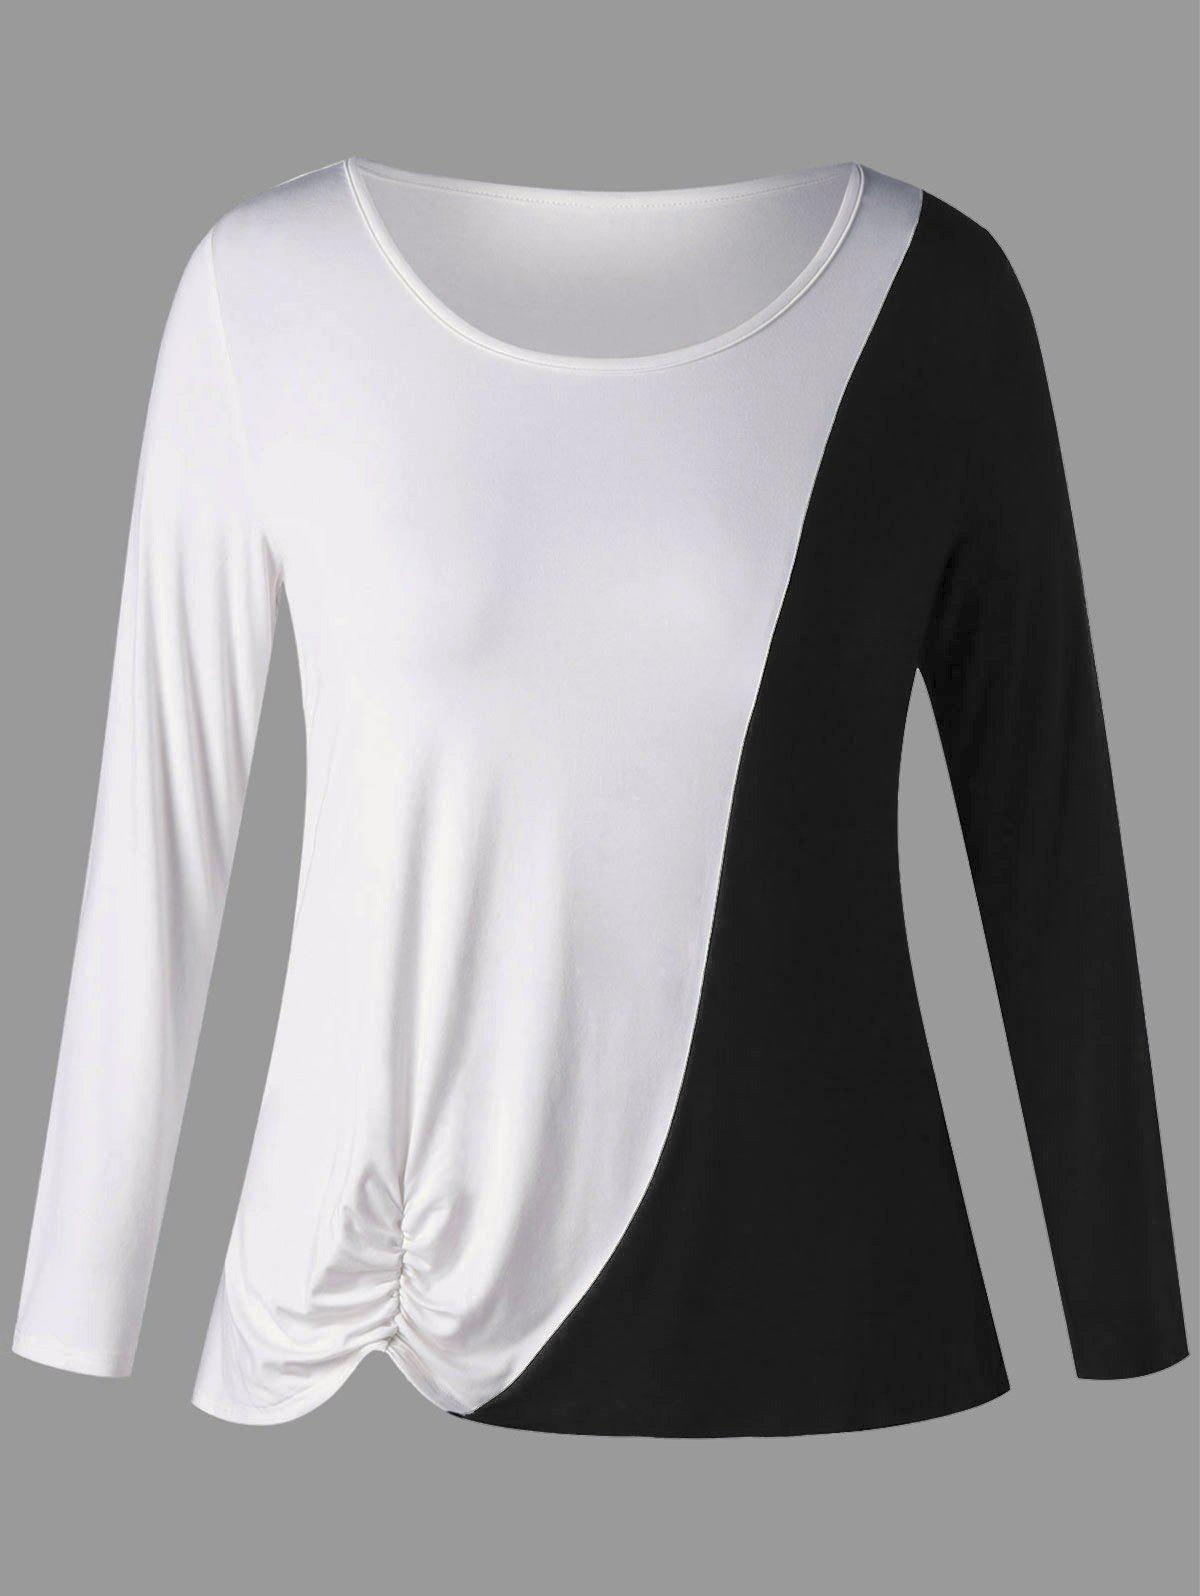 Plus Size Two Tone Long Sleeve Shirred T-shirt plus size v neck two tone t shirt